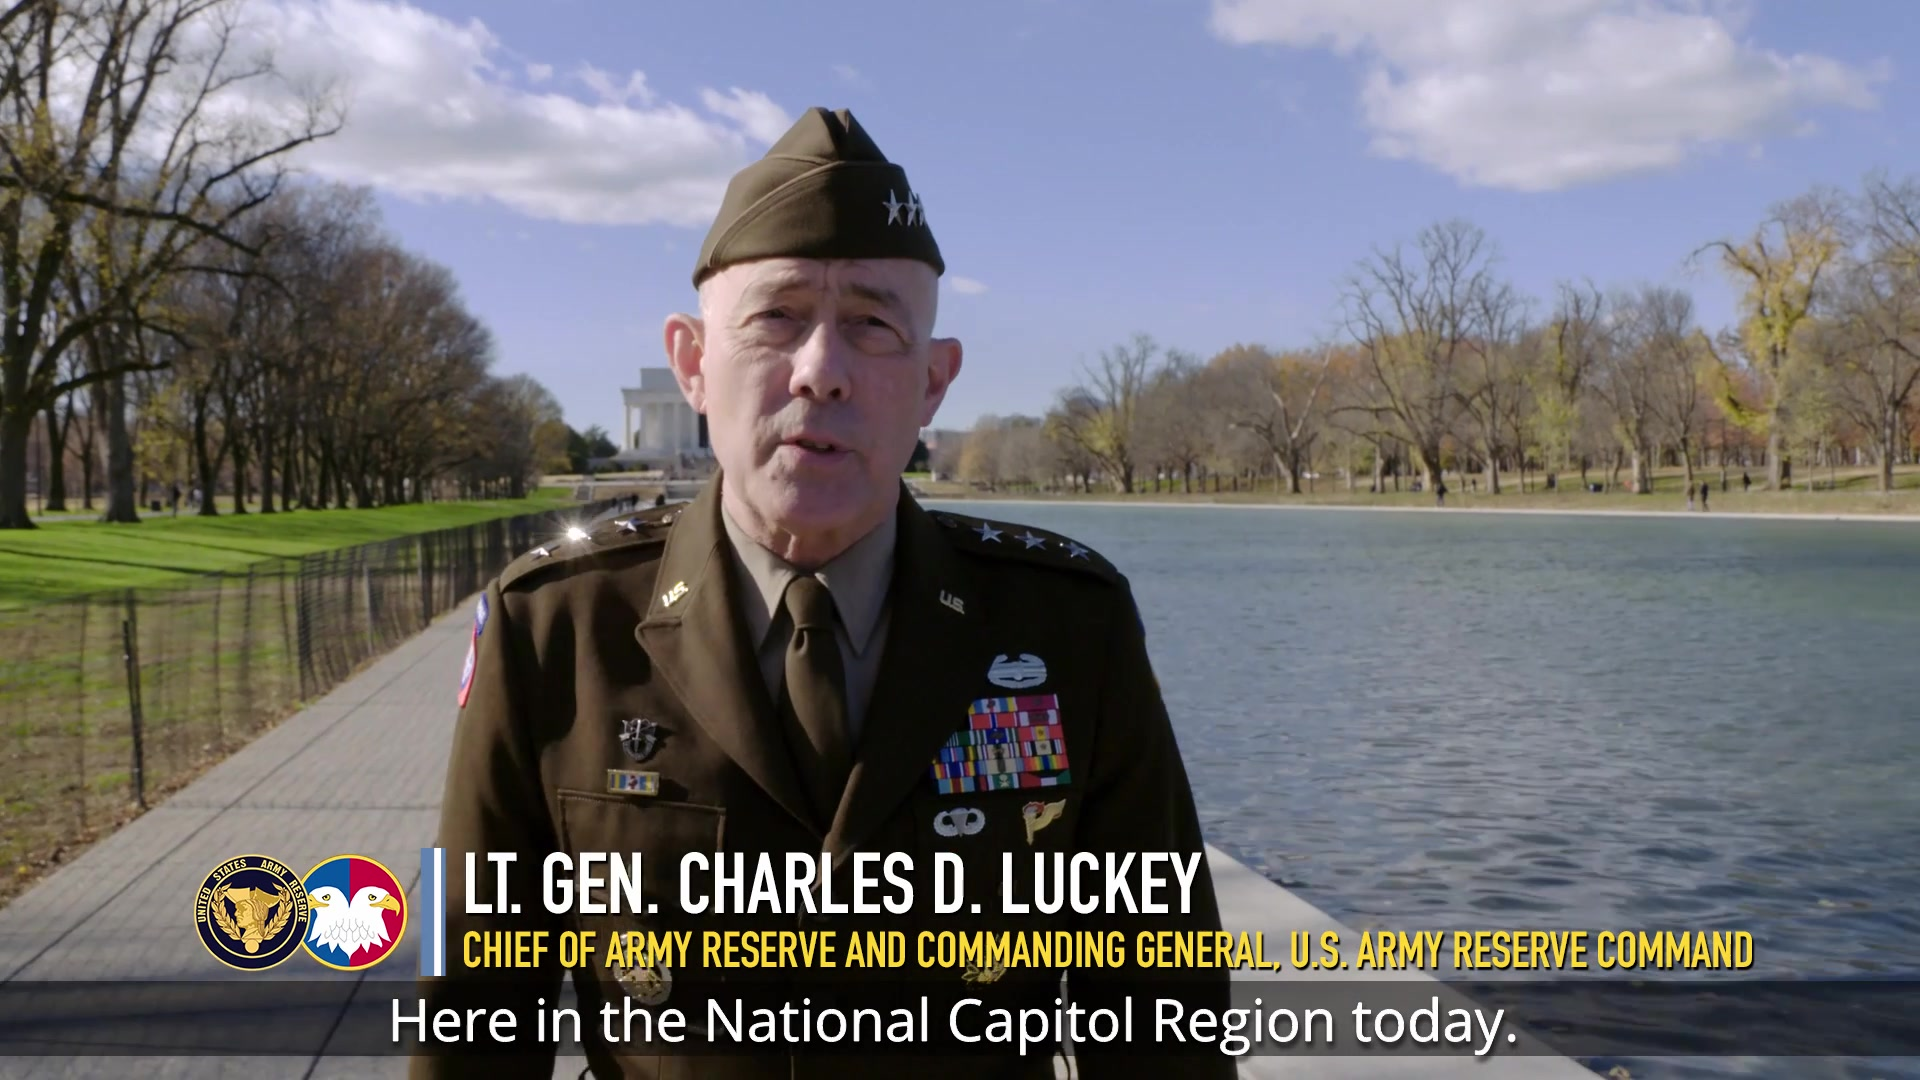 As we prepare to take another trip around the sun, Lt. Gen. Charles D. Luckey, chief of Army Reserve and commanding general, U.S. Army Reserve Command, reflects on how history informs us of the importance of service and reminds us of the values necessary to be a citizen and a Soldier in America's Army.